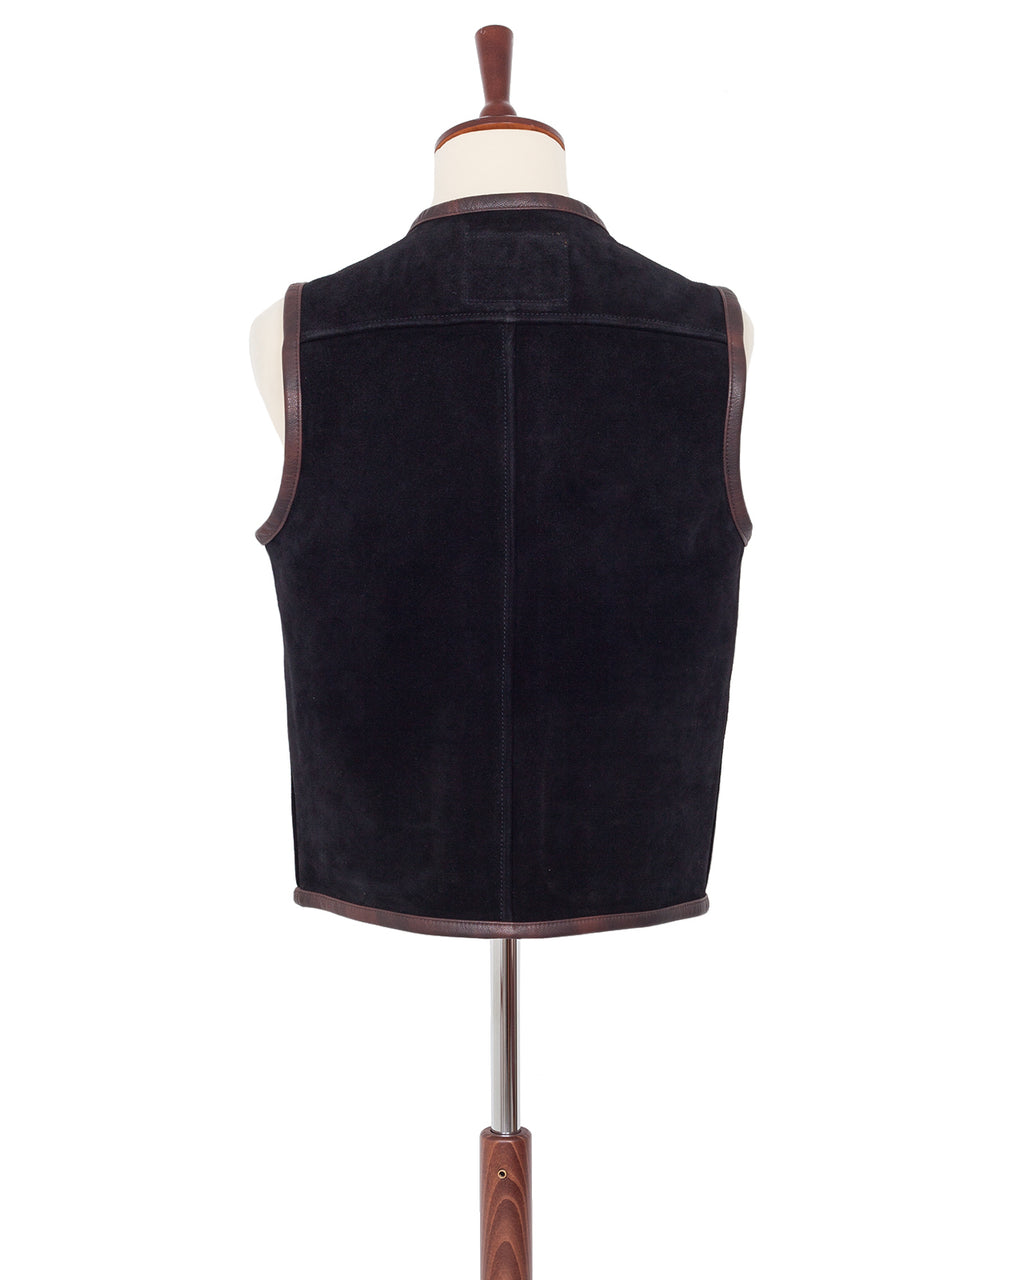 Indigofera Monroe Vest, Black Rough Out